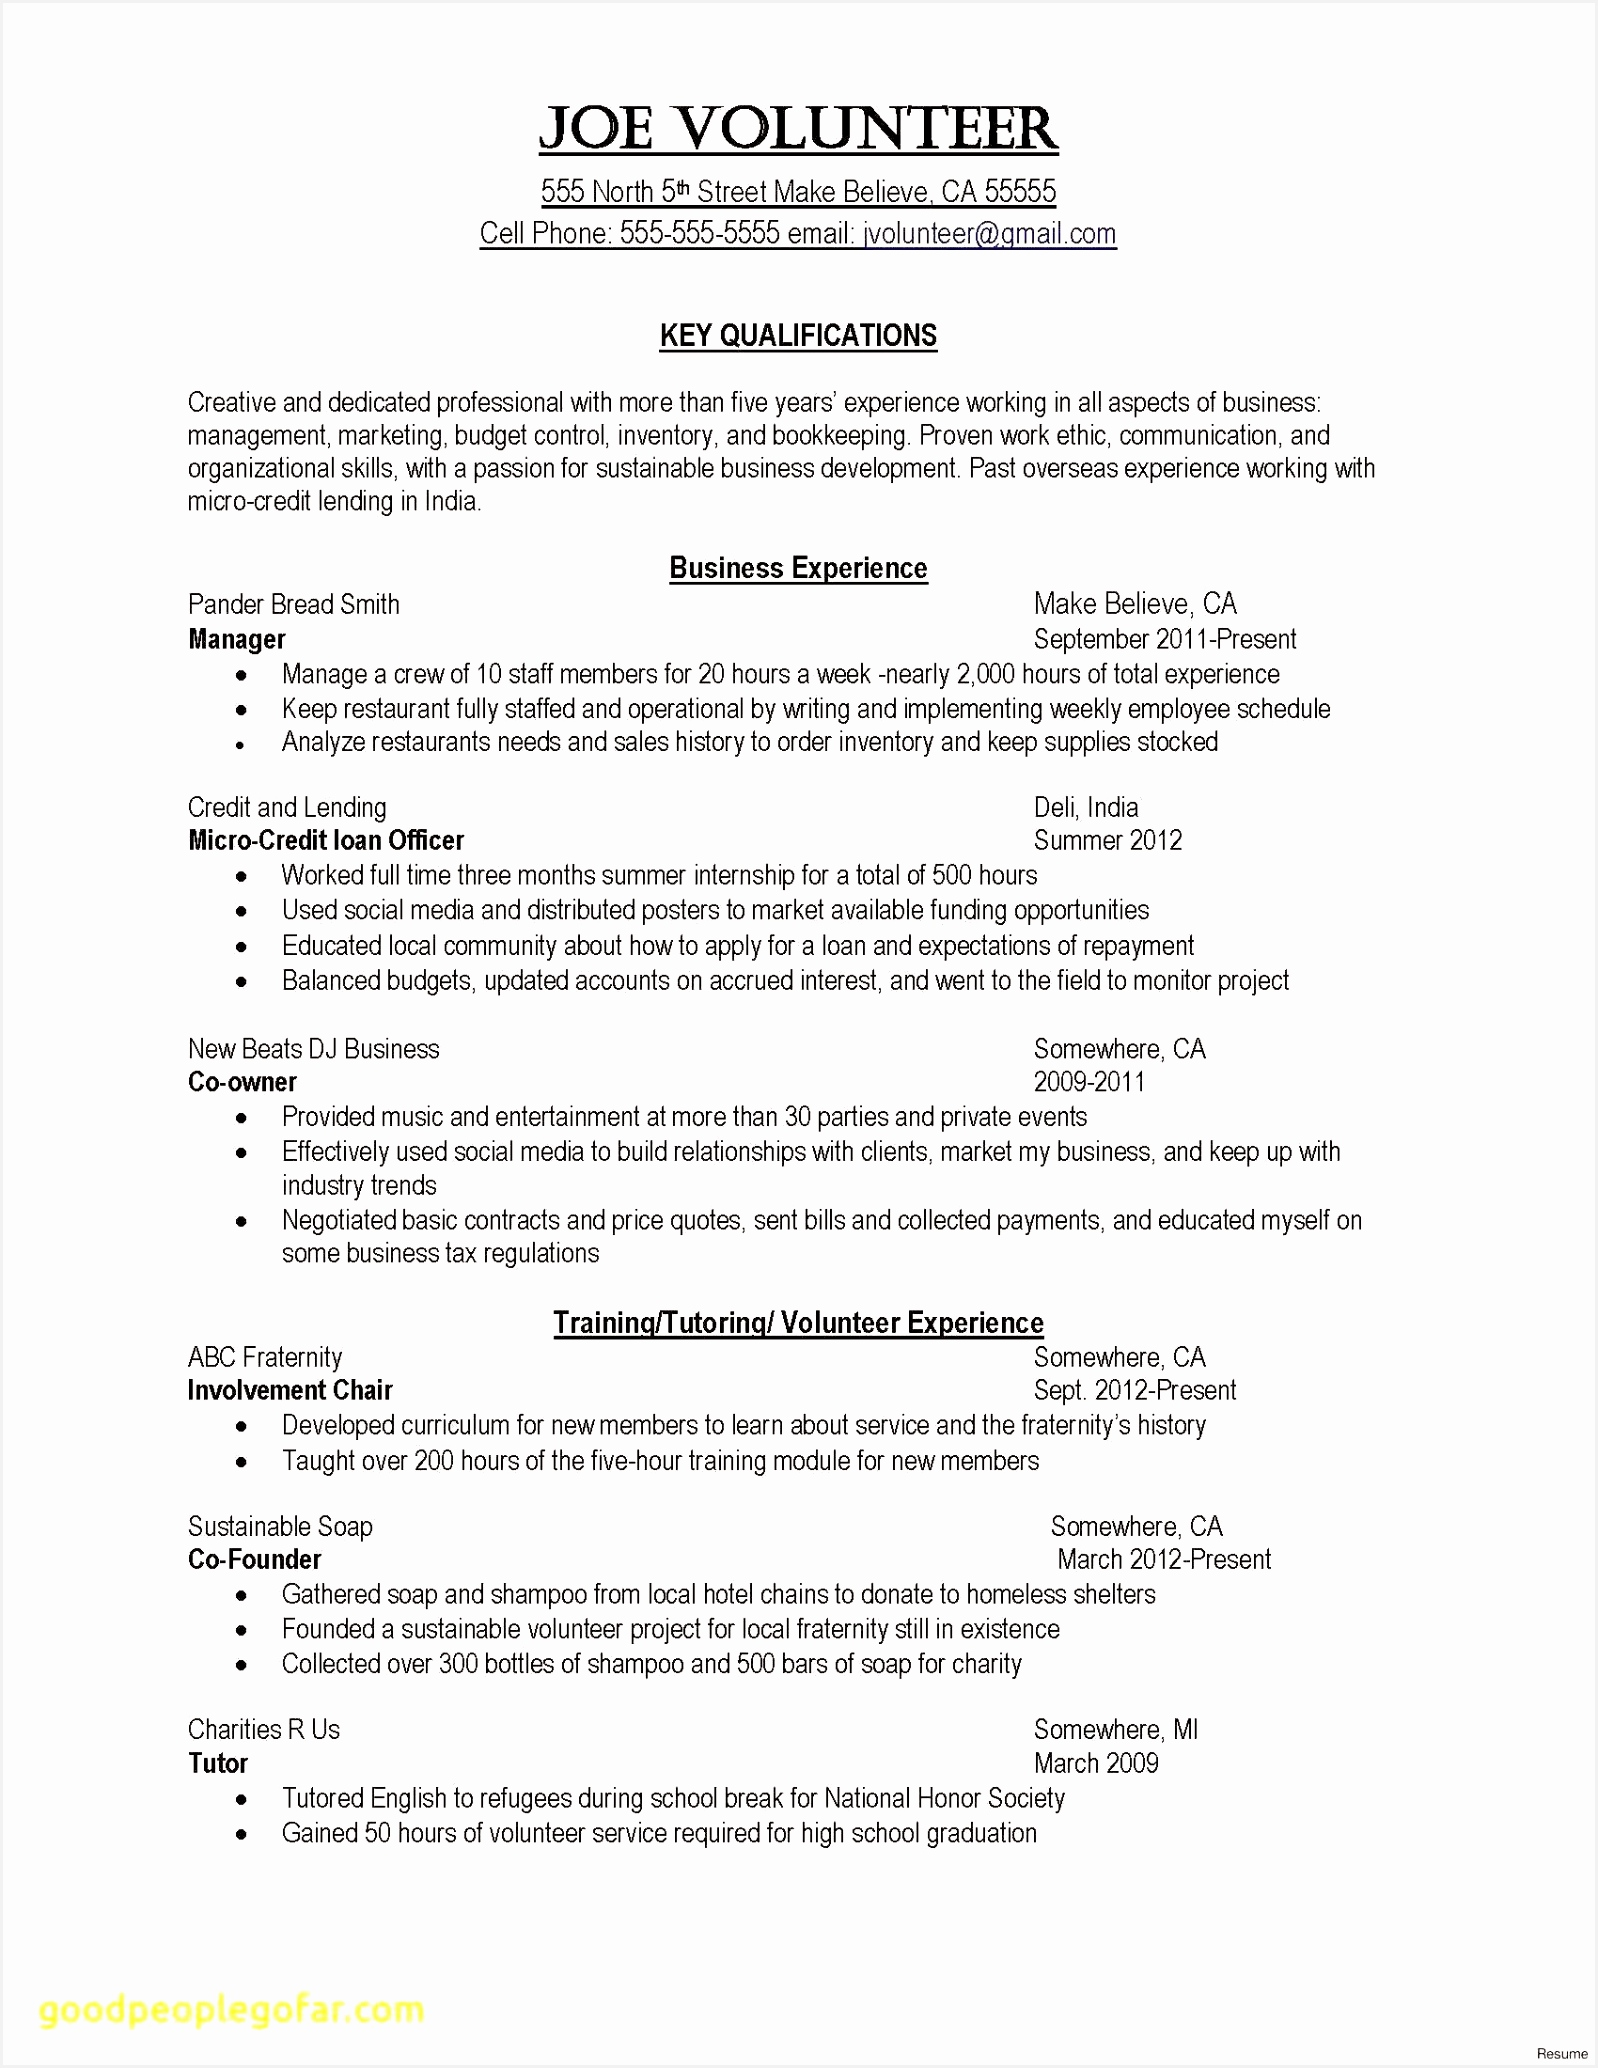 Cv Templates Download Sdjnc New Best Free Resume Templates Sample Example A Great Resume Rn Resume Of 5 Cv Templates Download